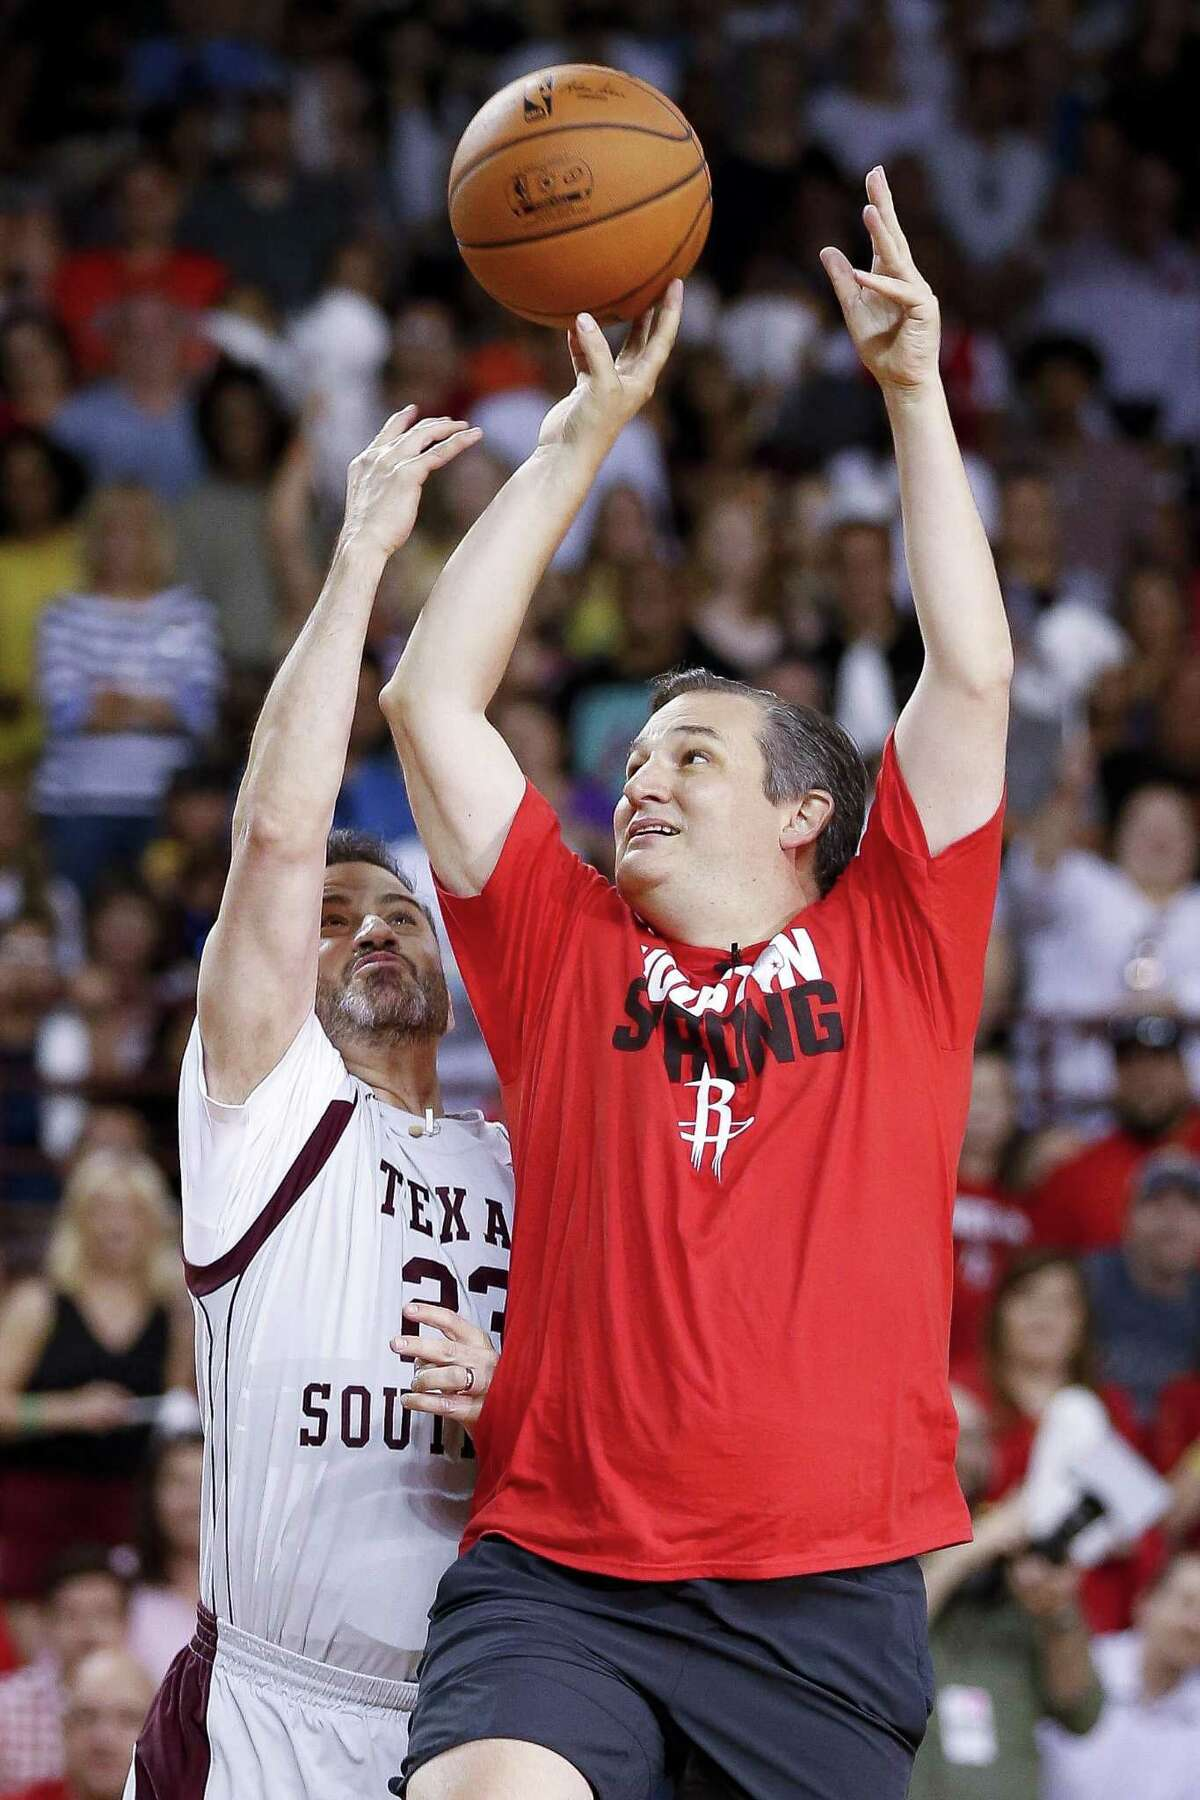 Jimmy Kimmel attempts to defend a shot by senator Ted Cruz during the Blobfish Basketball Classic and one-on-one interview at Texas Southern University's Health & Physical Education Arena Saturday, June 16, 2018 in Houston. Cruz challenged Kimmel to the game after Kimmel blamed the Houston Rockets playoff loss on the senator. (Michael Ciaglo / Houston Chronicle)